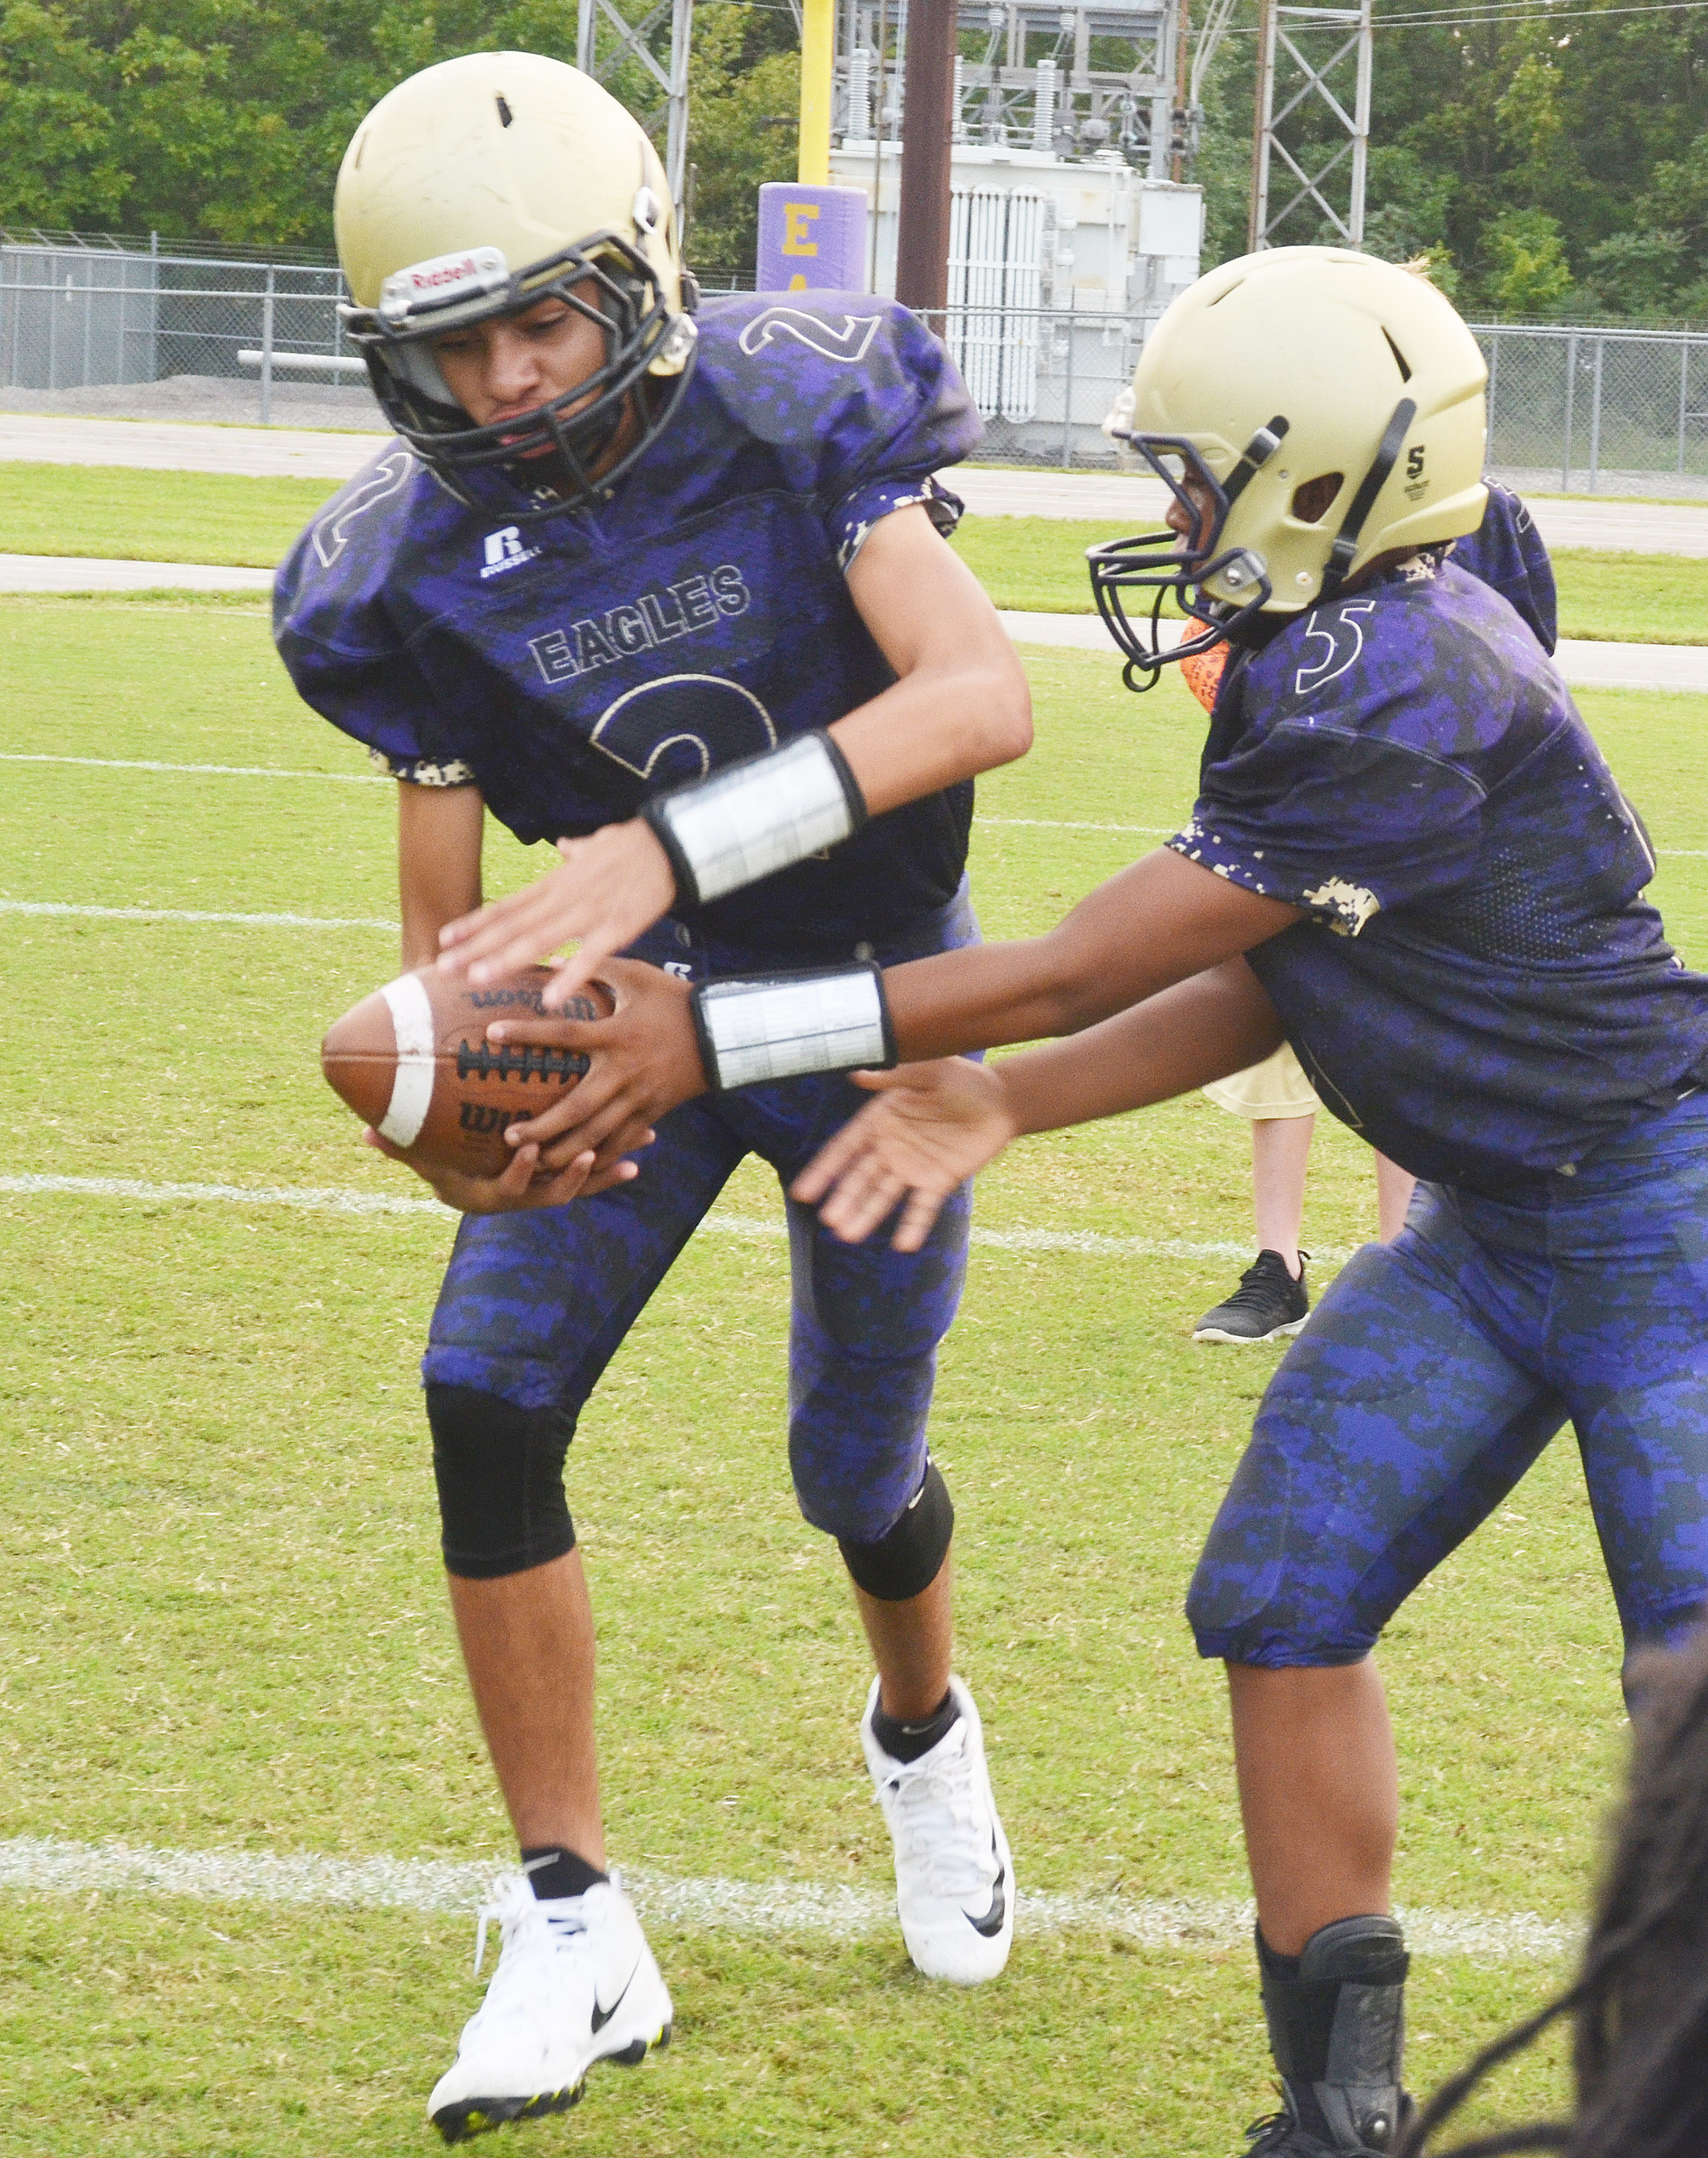 CMS seventh-grader Deondre Weathers hands the ball to eighth-grader Adrien Smith.